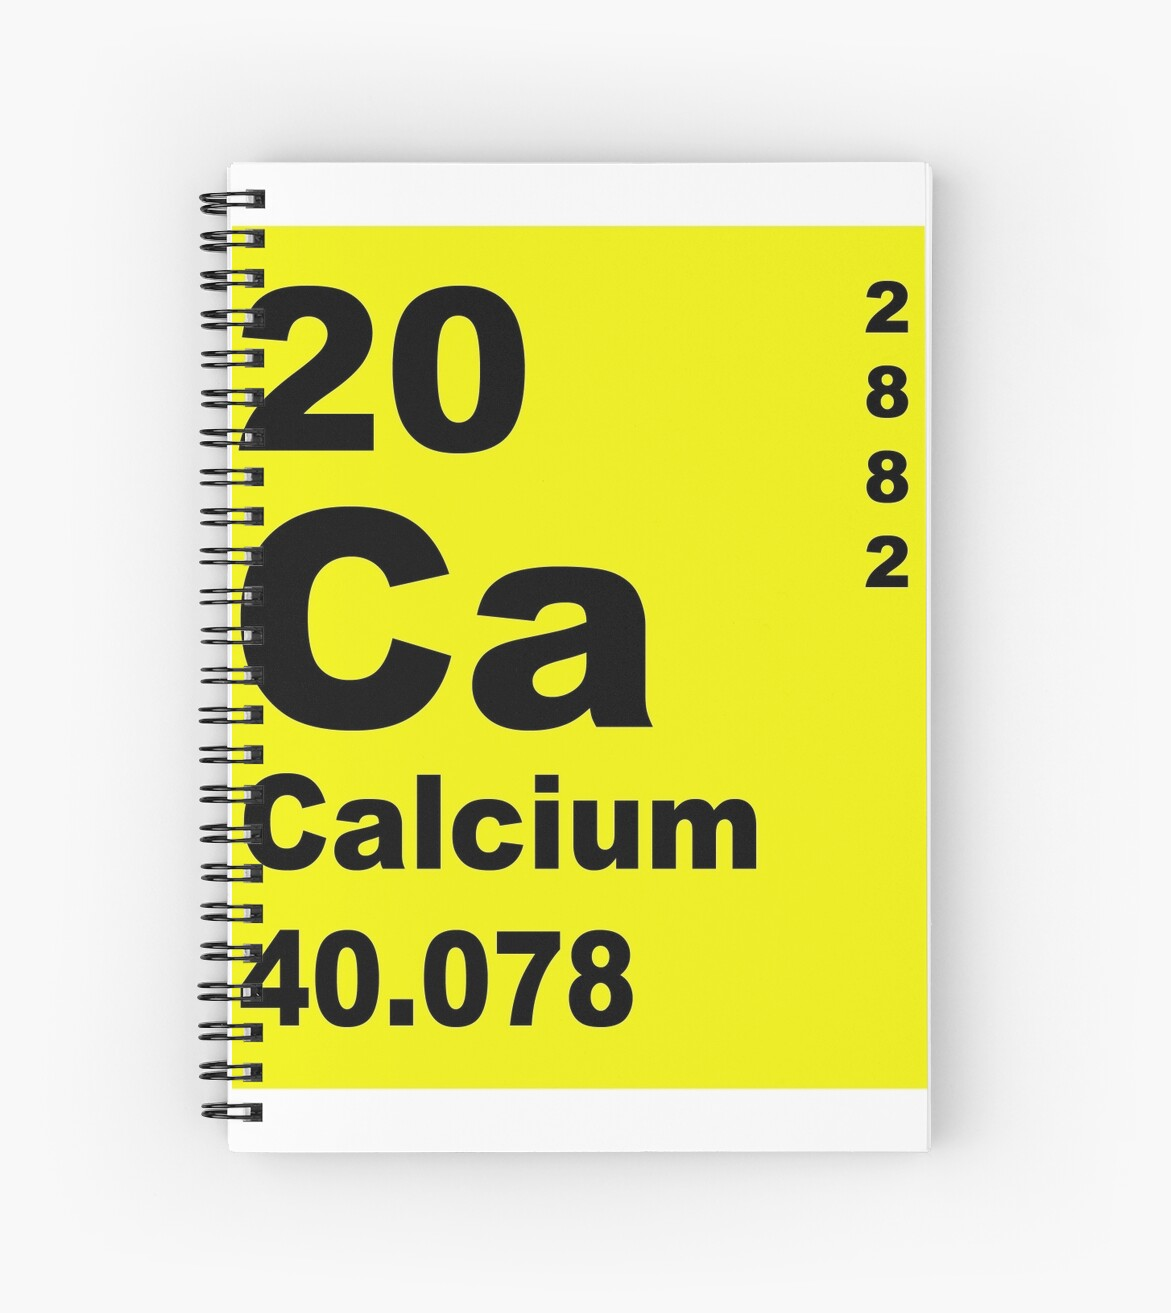 Calcium Periodic Table Of Elements Spiral Notebooks By Walterericsy